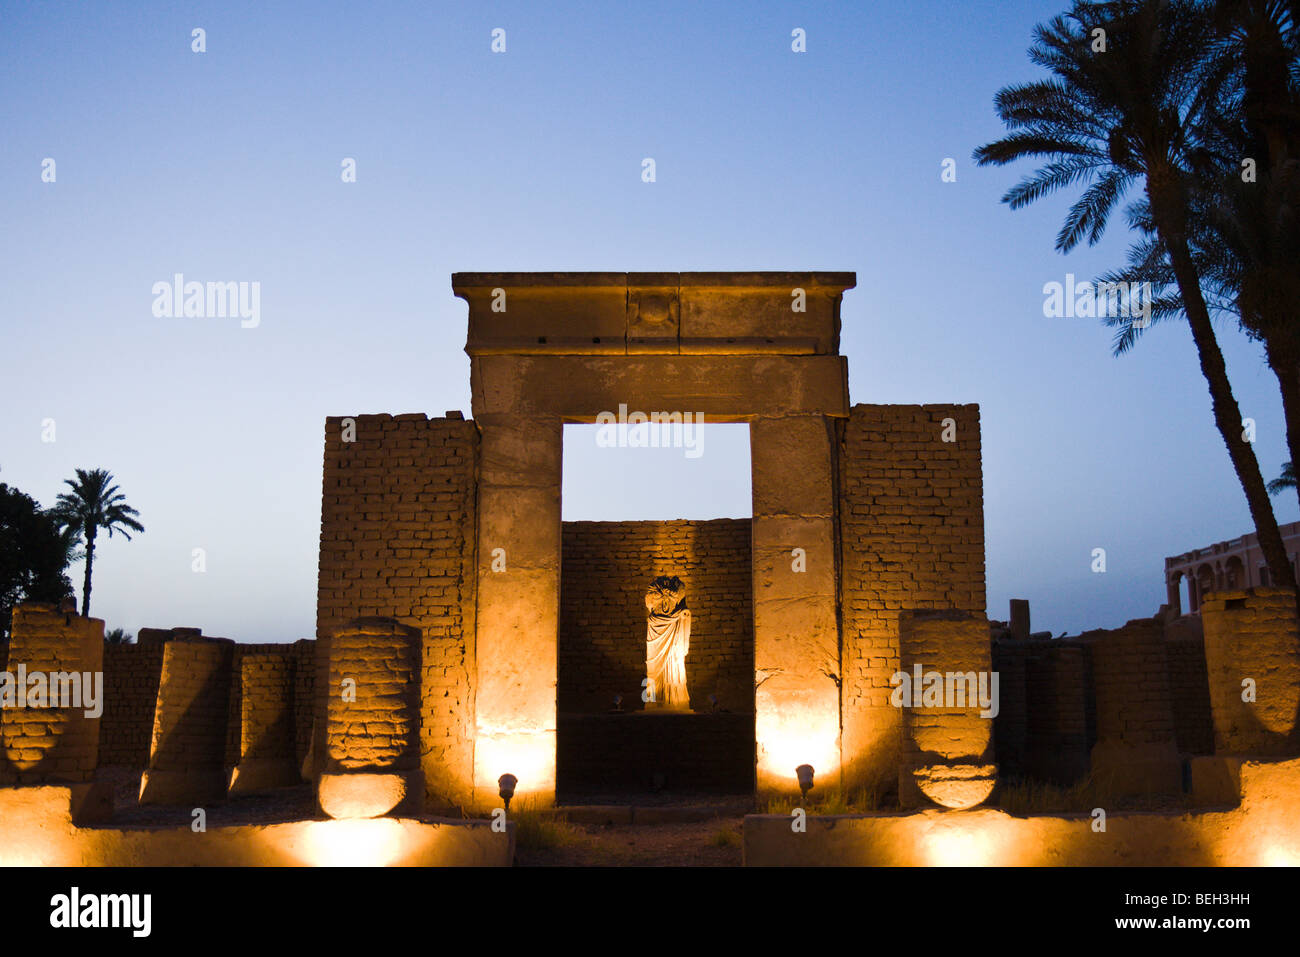 Serapis Chapell at Luxor Temple, Luxor, Egypt - Stock Image